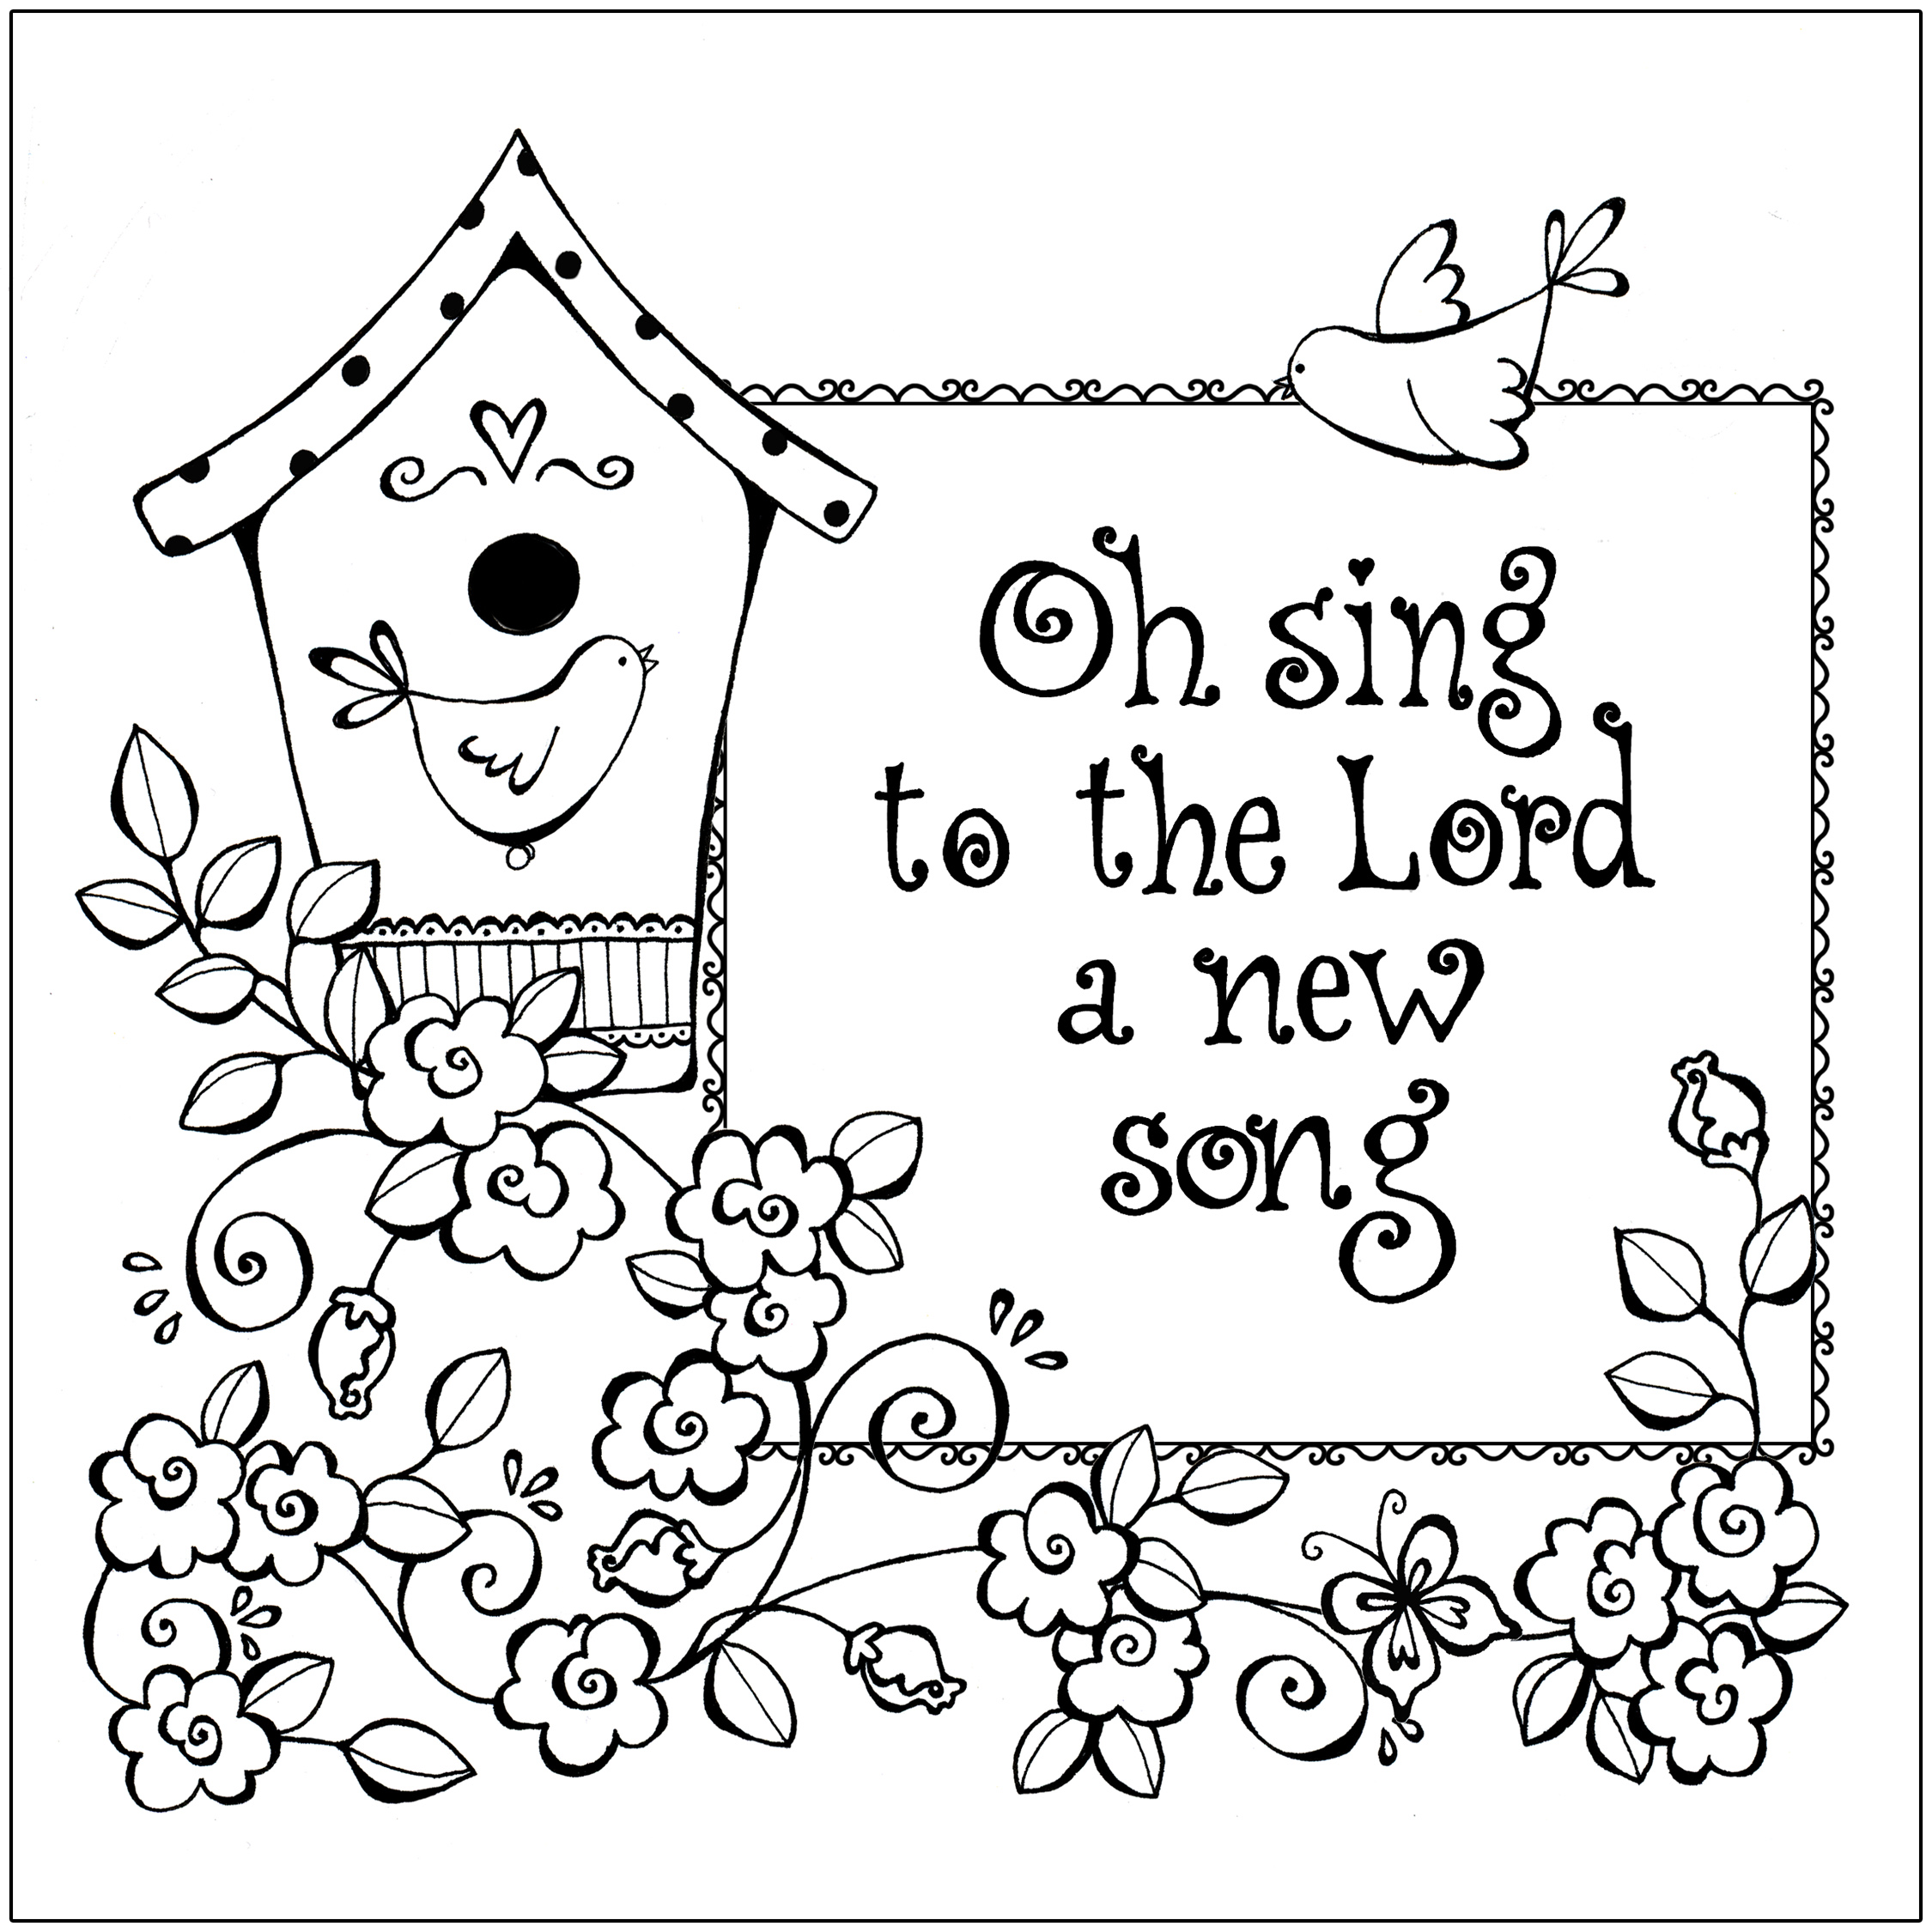 Free Printable Christian Coloring Pages For Kids Best Coloring Pages For Kids